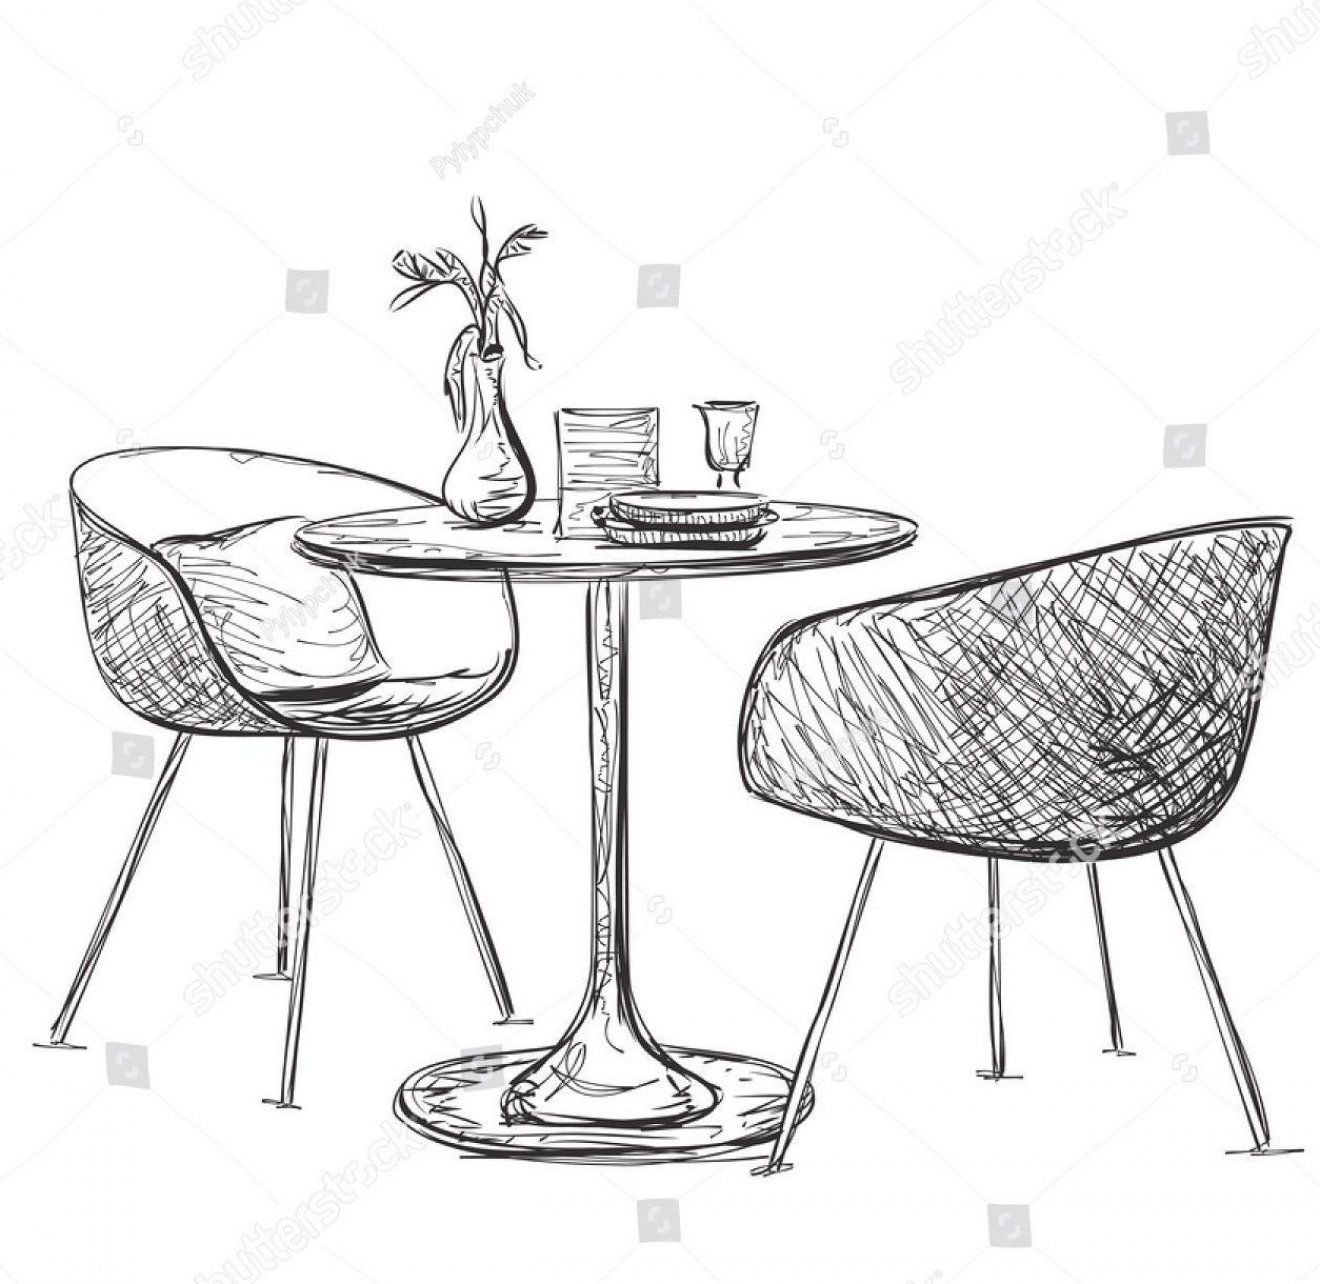 Sketch Of Modern Interior Table And Chairs Hand Drawn Furniture In 2020 Interior Design Sketches Furniture Design Sketches How To Draw Hands